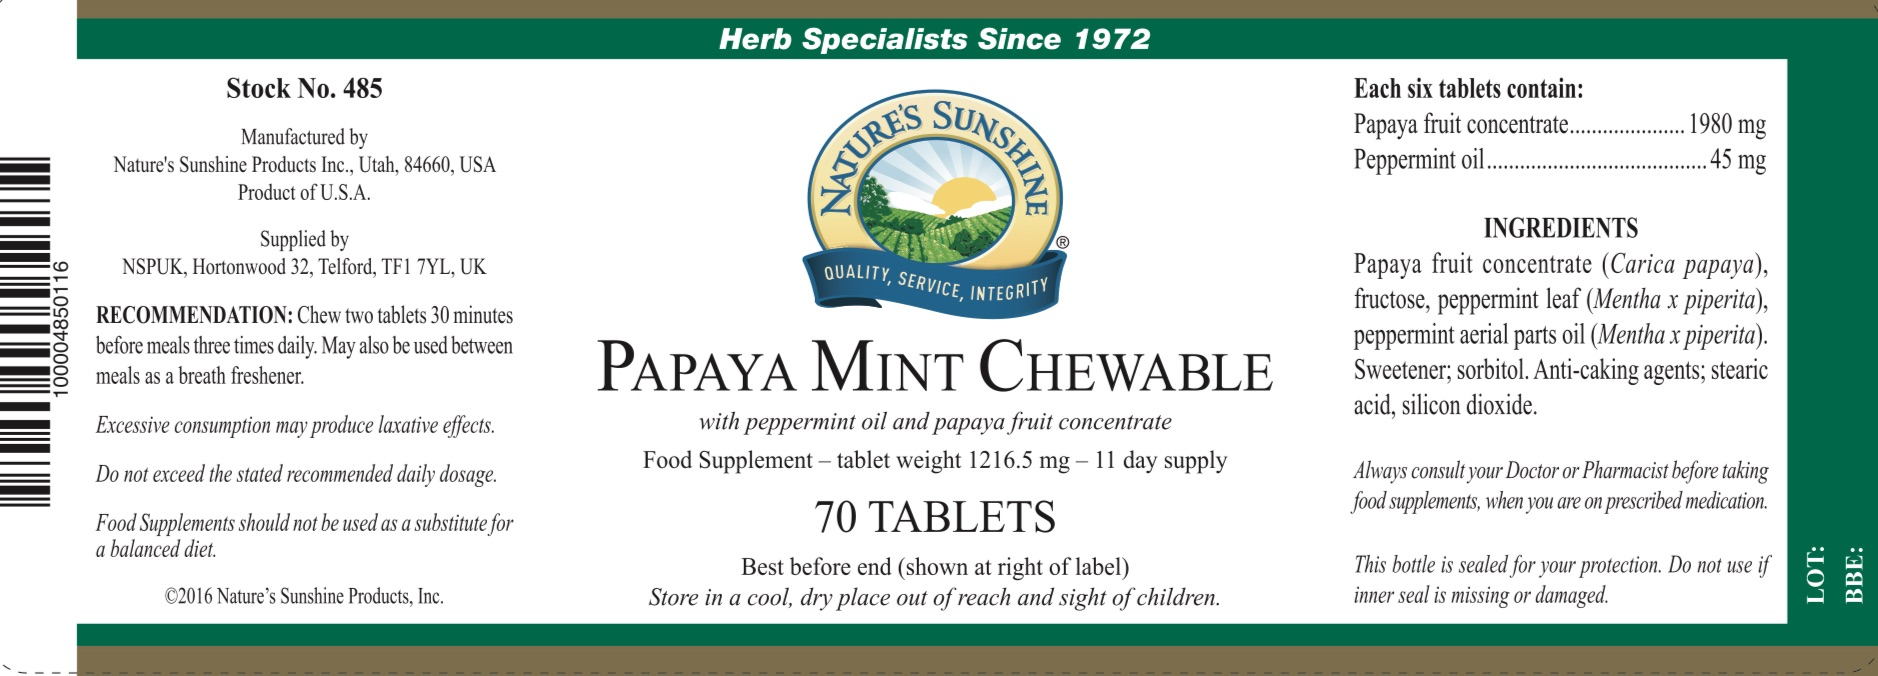 Nature's Sunshine Papaya Mint Chewable - Label